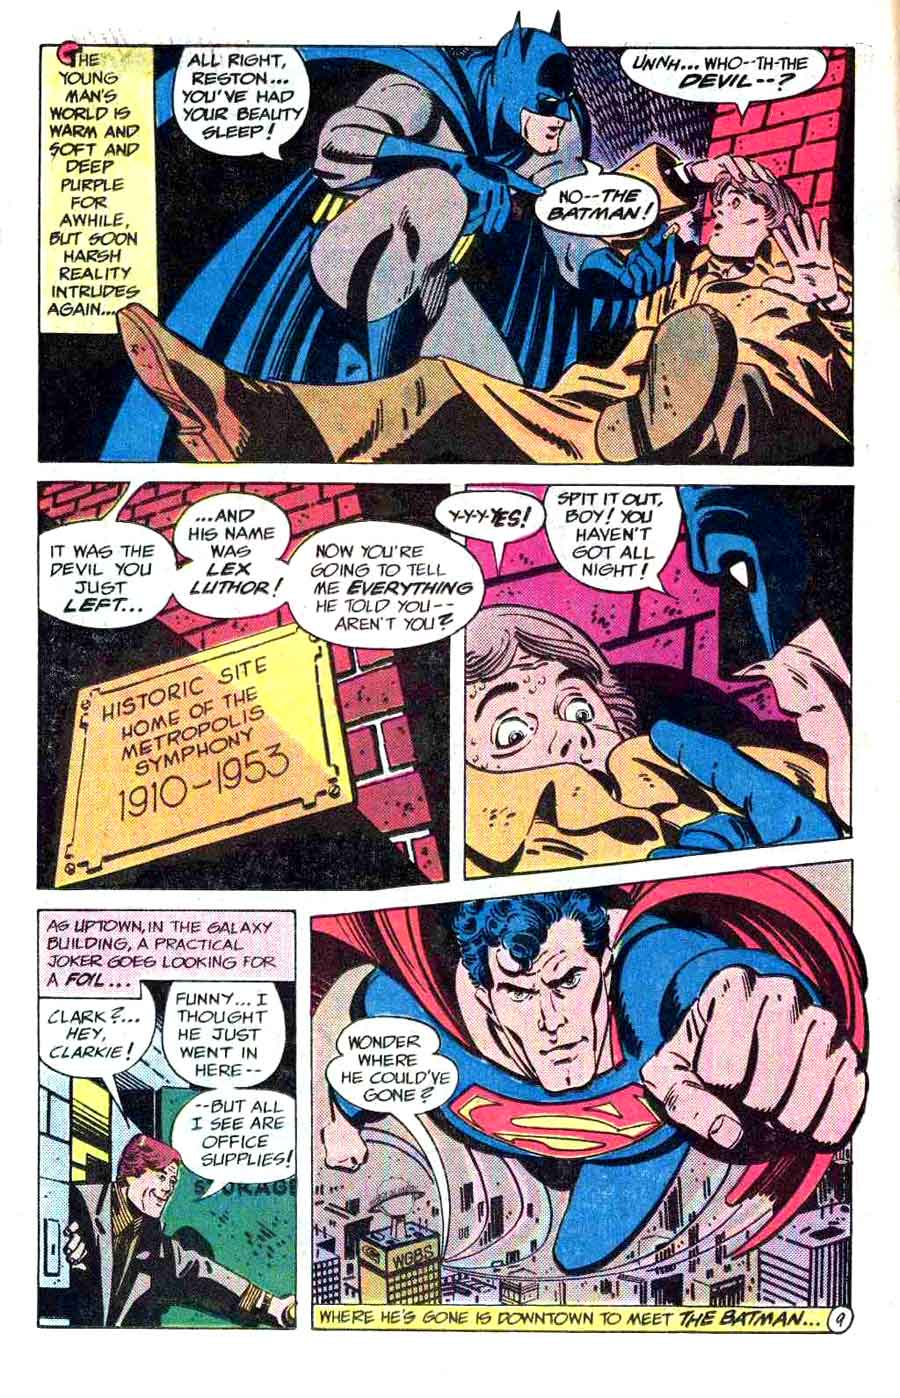 Superman v1 annual #9 dc comic book page art by Alex Toth